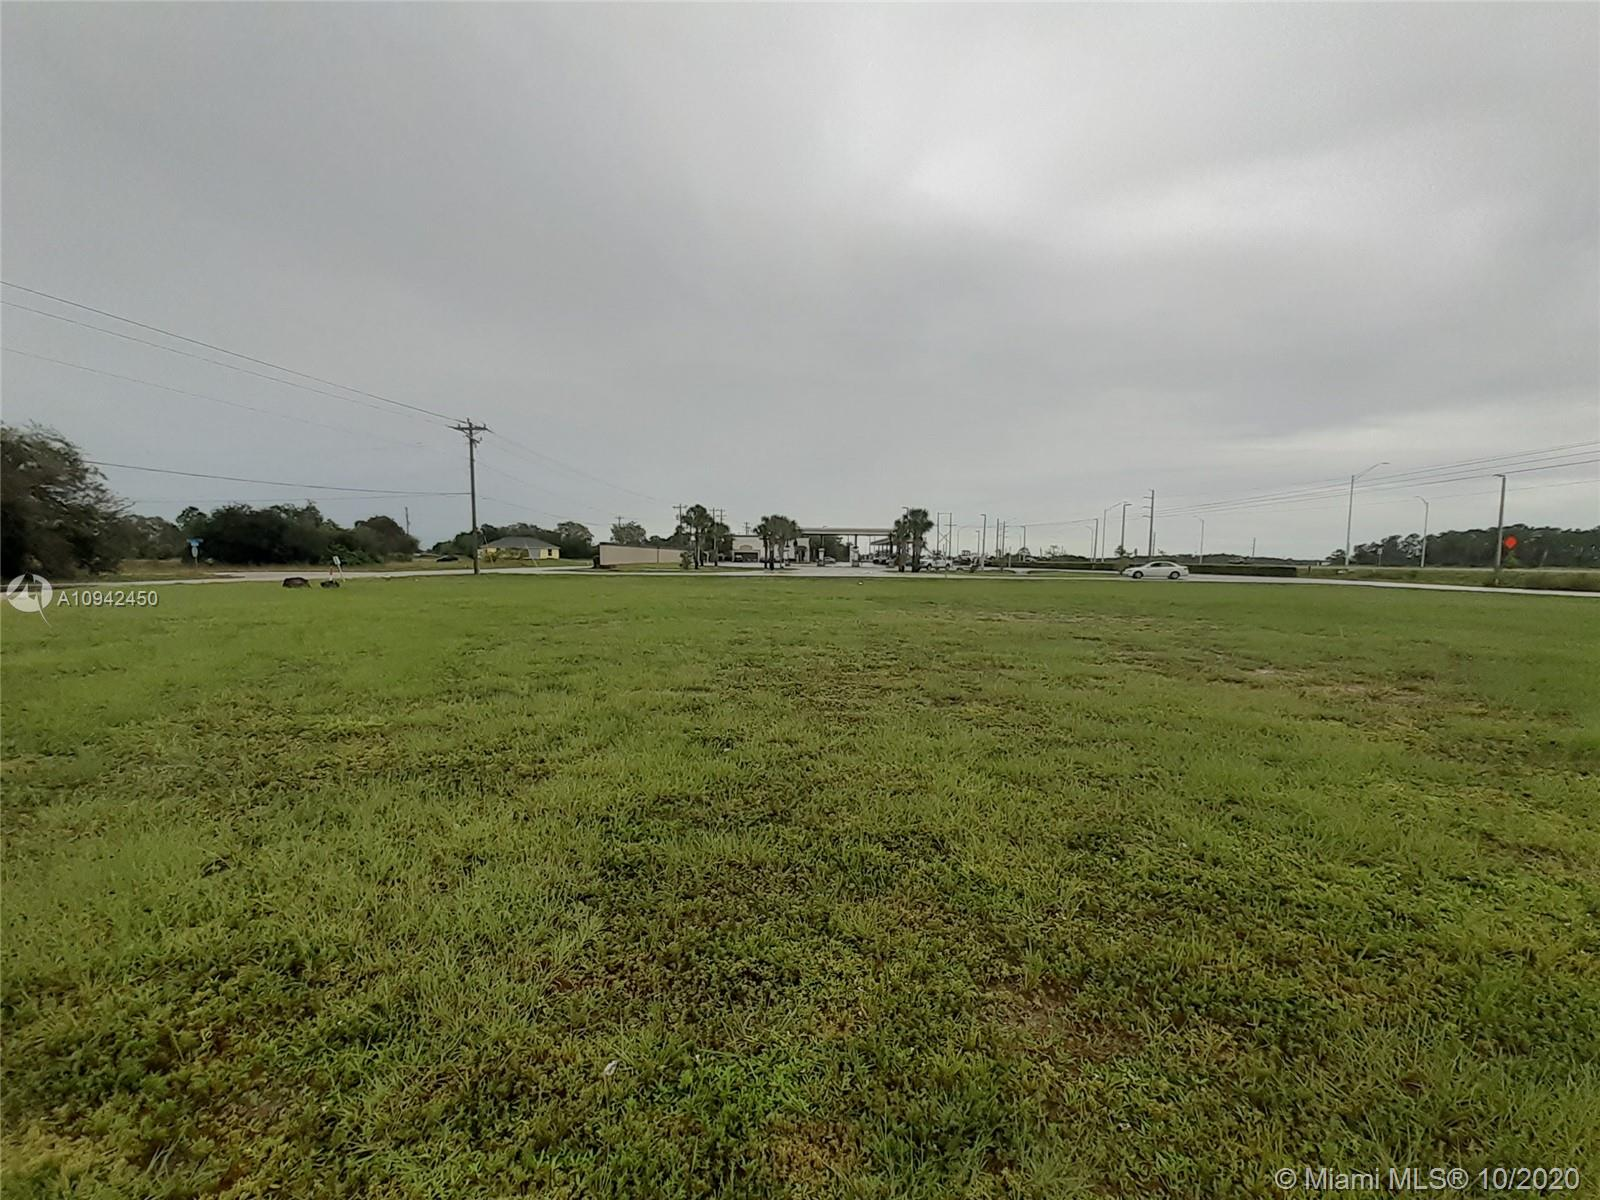 1626 Meadow Road, Lehigh Acres, Florida 33976, ,Commercial Land,For Sale,1626 Meadow Road,A10942450